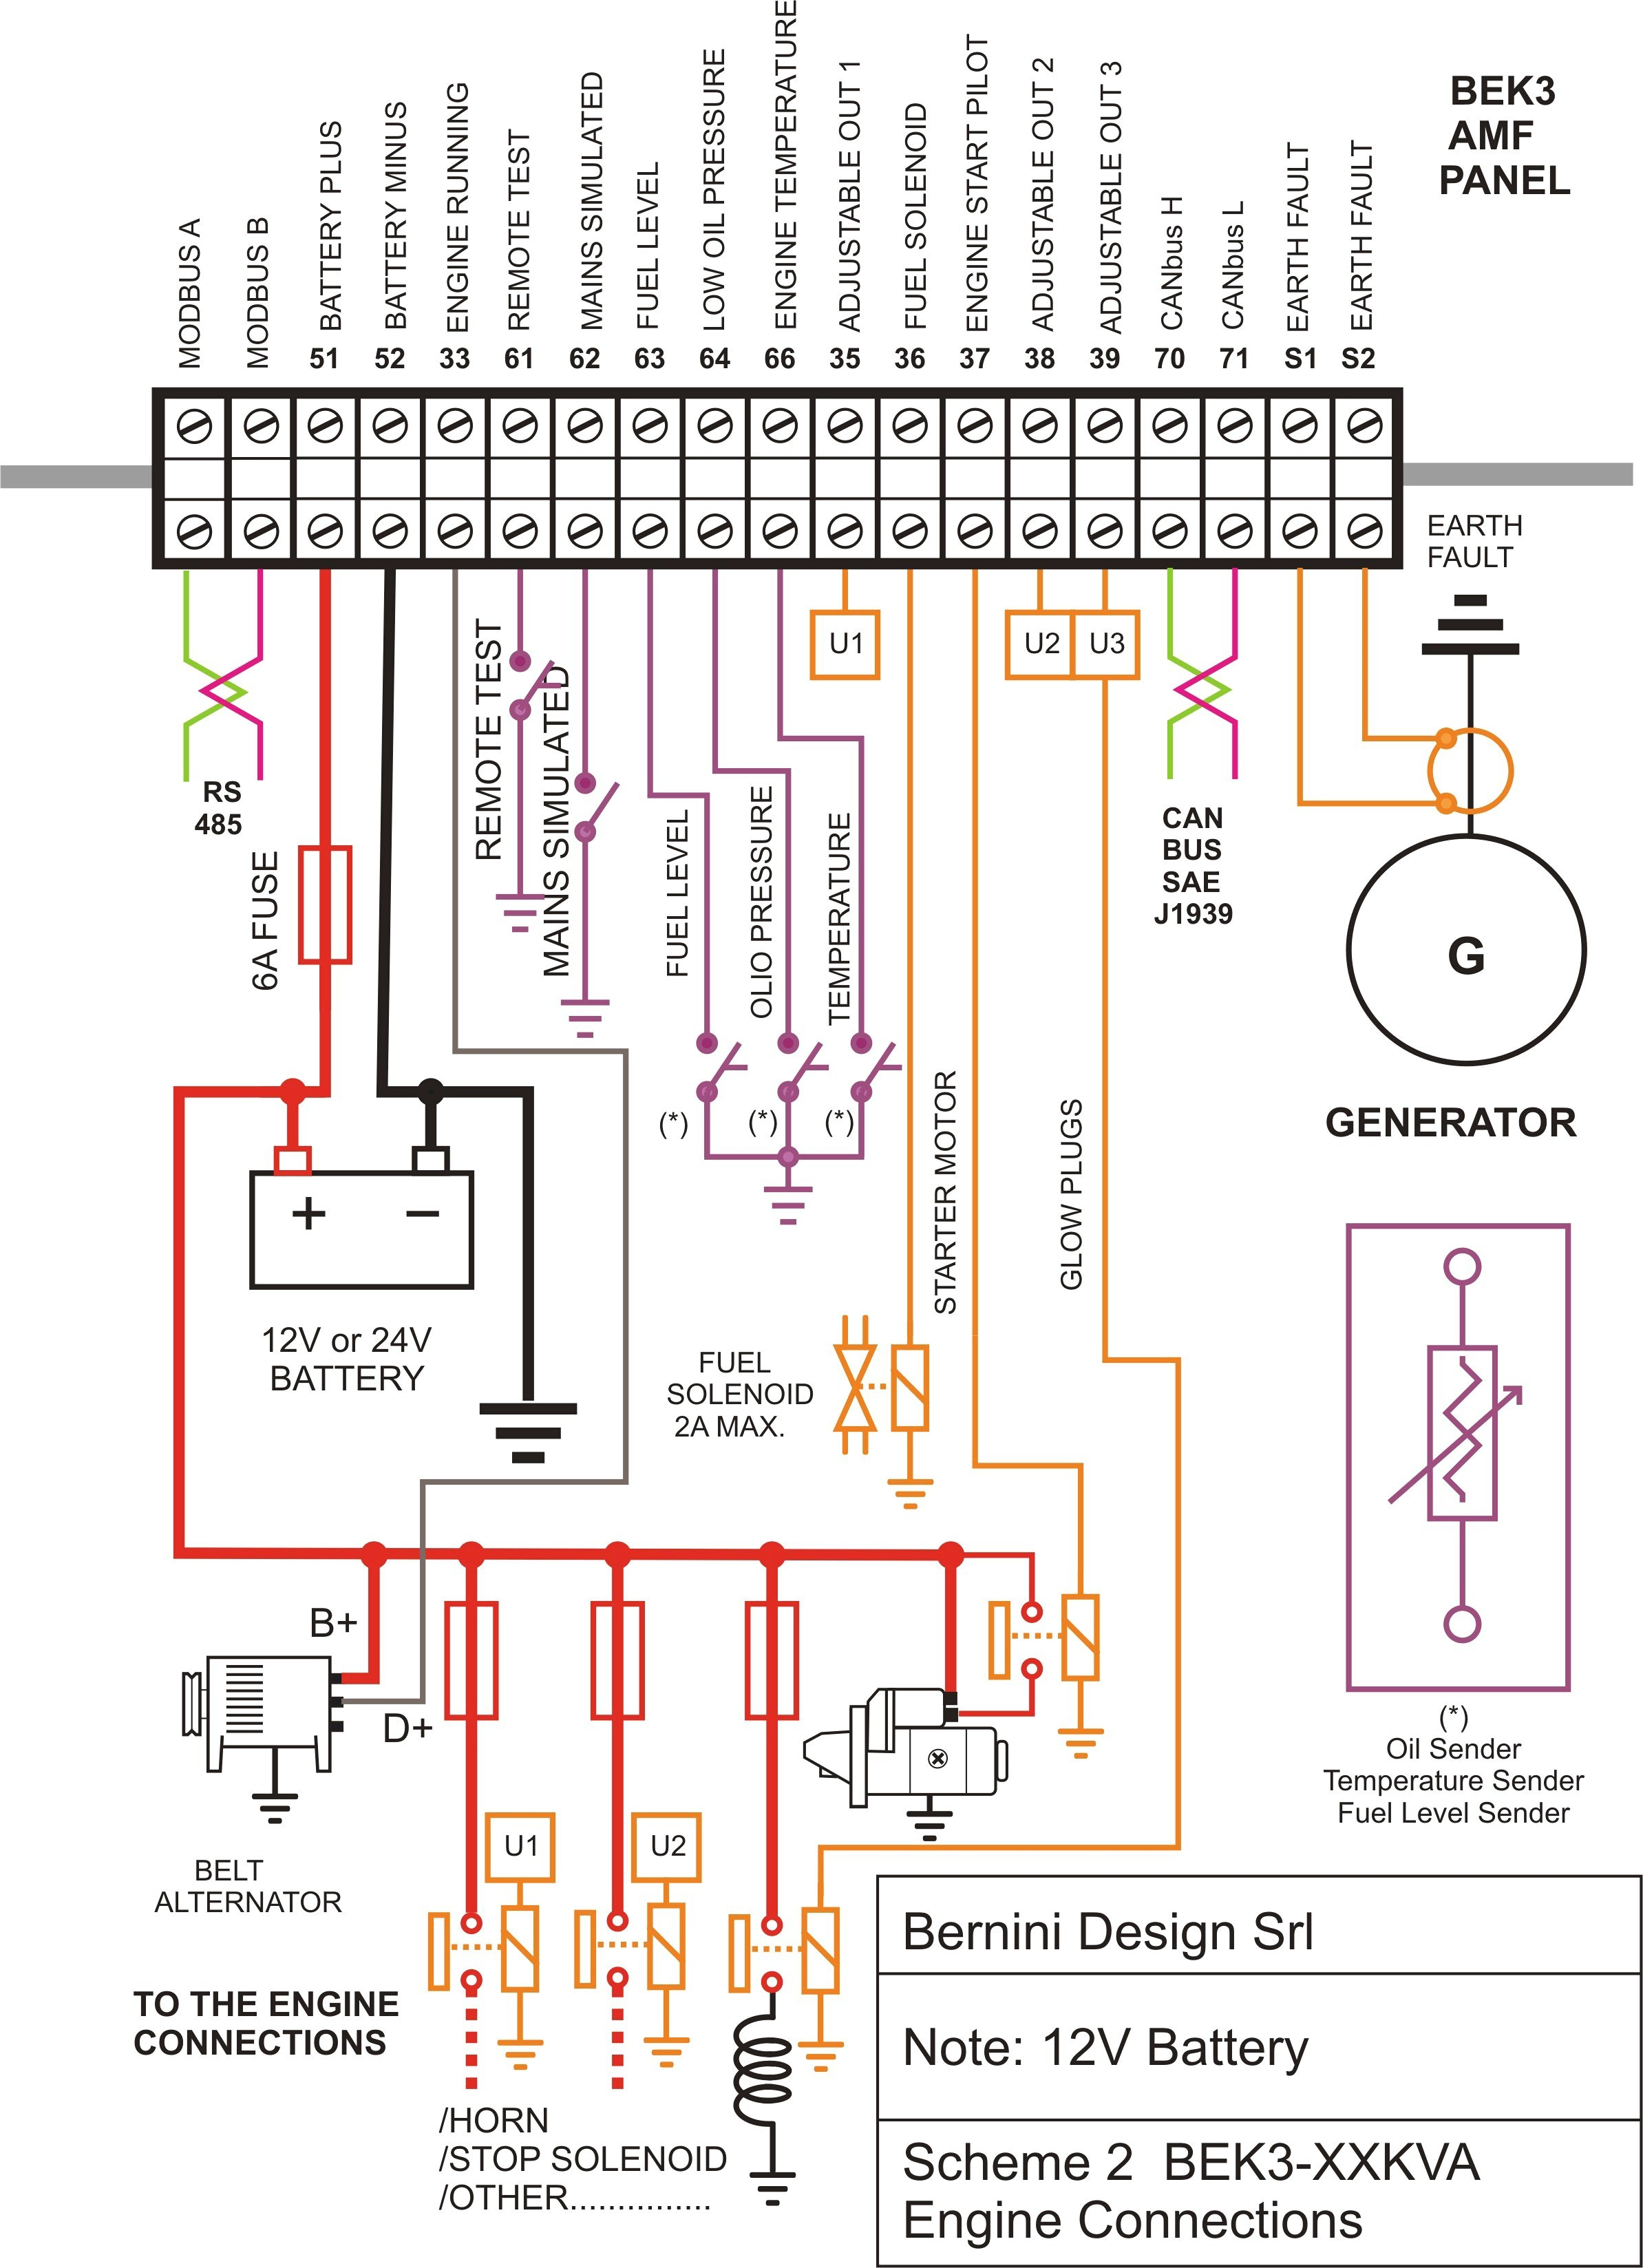 Technics Home Stereo Wiring Diagrams   Wiring Diagram on home speaker wire, home run wiring diagram, home theater system connection diagrams, home subwoofer wiring, home stereo layouts, home stereo schematics, home wiring systems, home stereo controls, home wired network setup, ic circuit diagrams, home audio wiring guide, home entertainment wiring, home stereo installation, home speaker wiring, home stereo fuses, home stereo cooling, home audio diagram, home stereo hook up diagrams, home stereo setup diagram, home stereo wires,